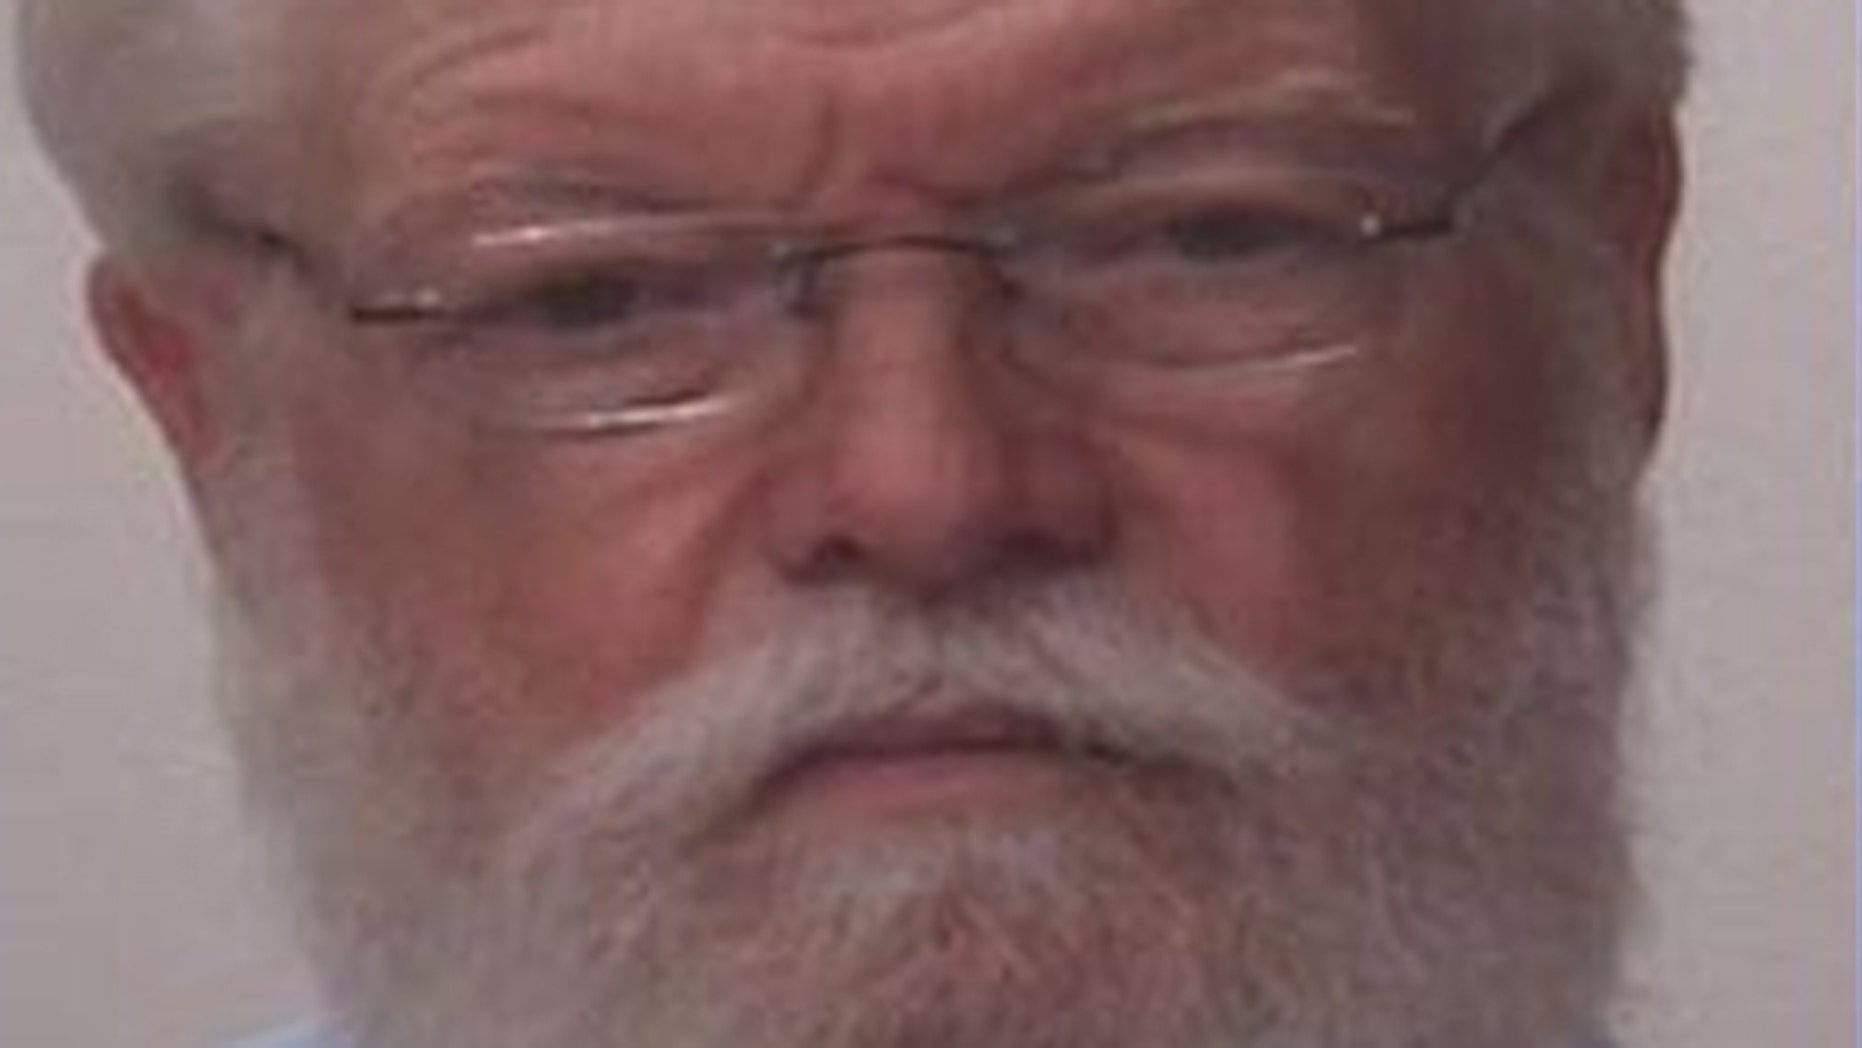 Dr. Millard (Lou) Tierce, of the Camp Bowie Animal Clinic, has been arrested for alleged animal cruelty.